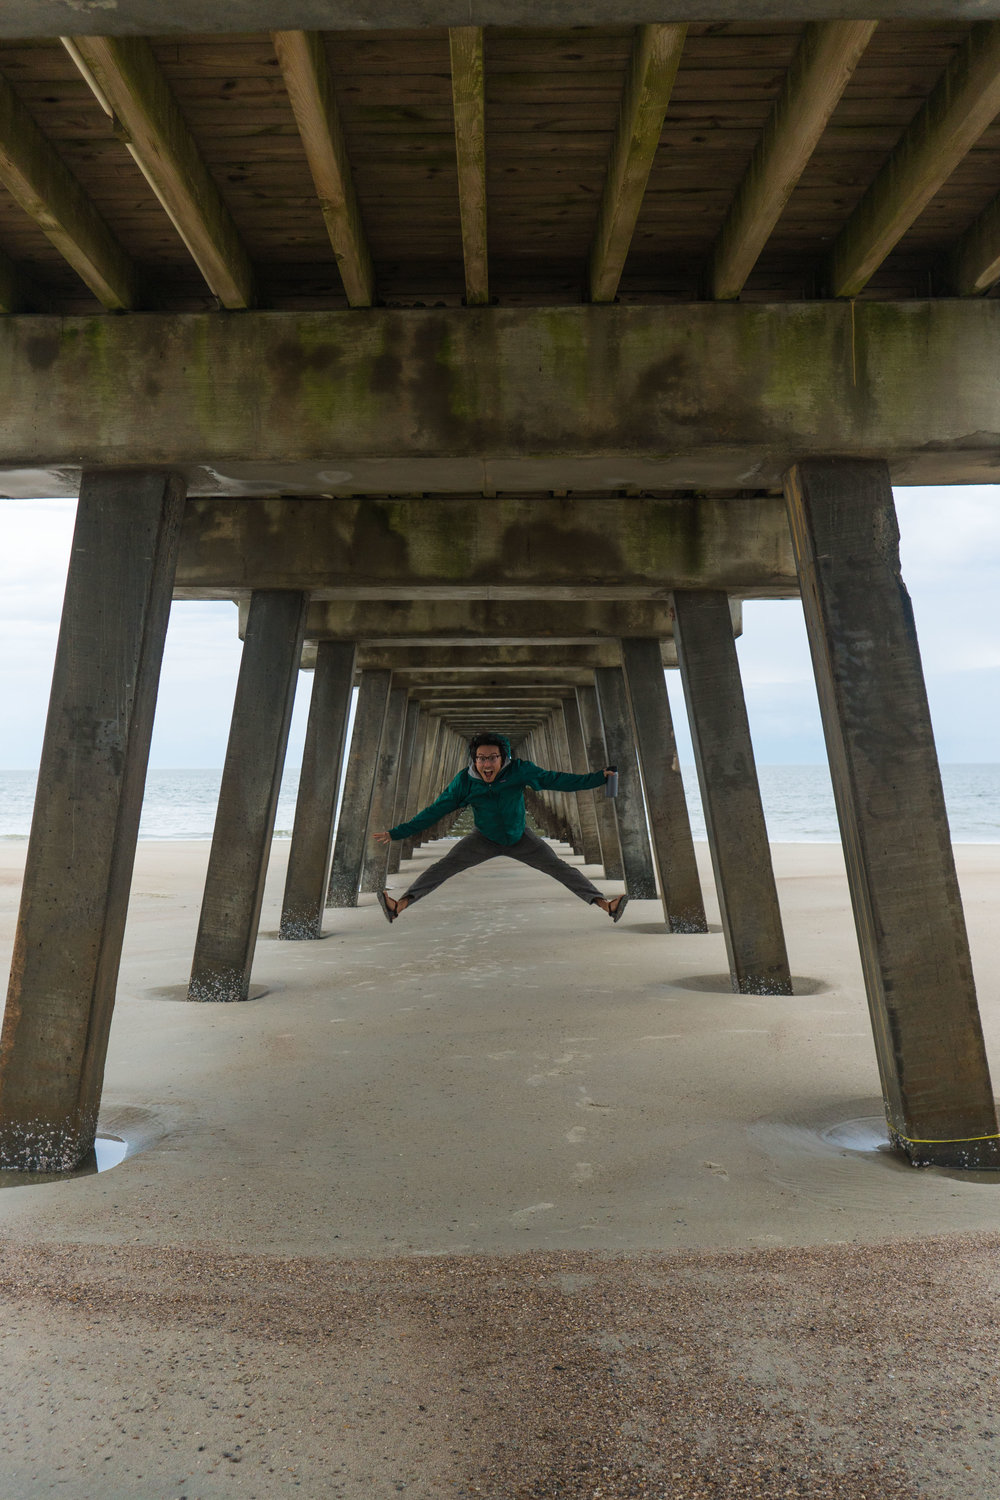 Owen under the Tybee Pier